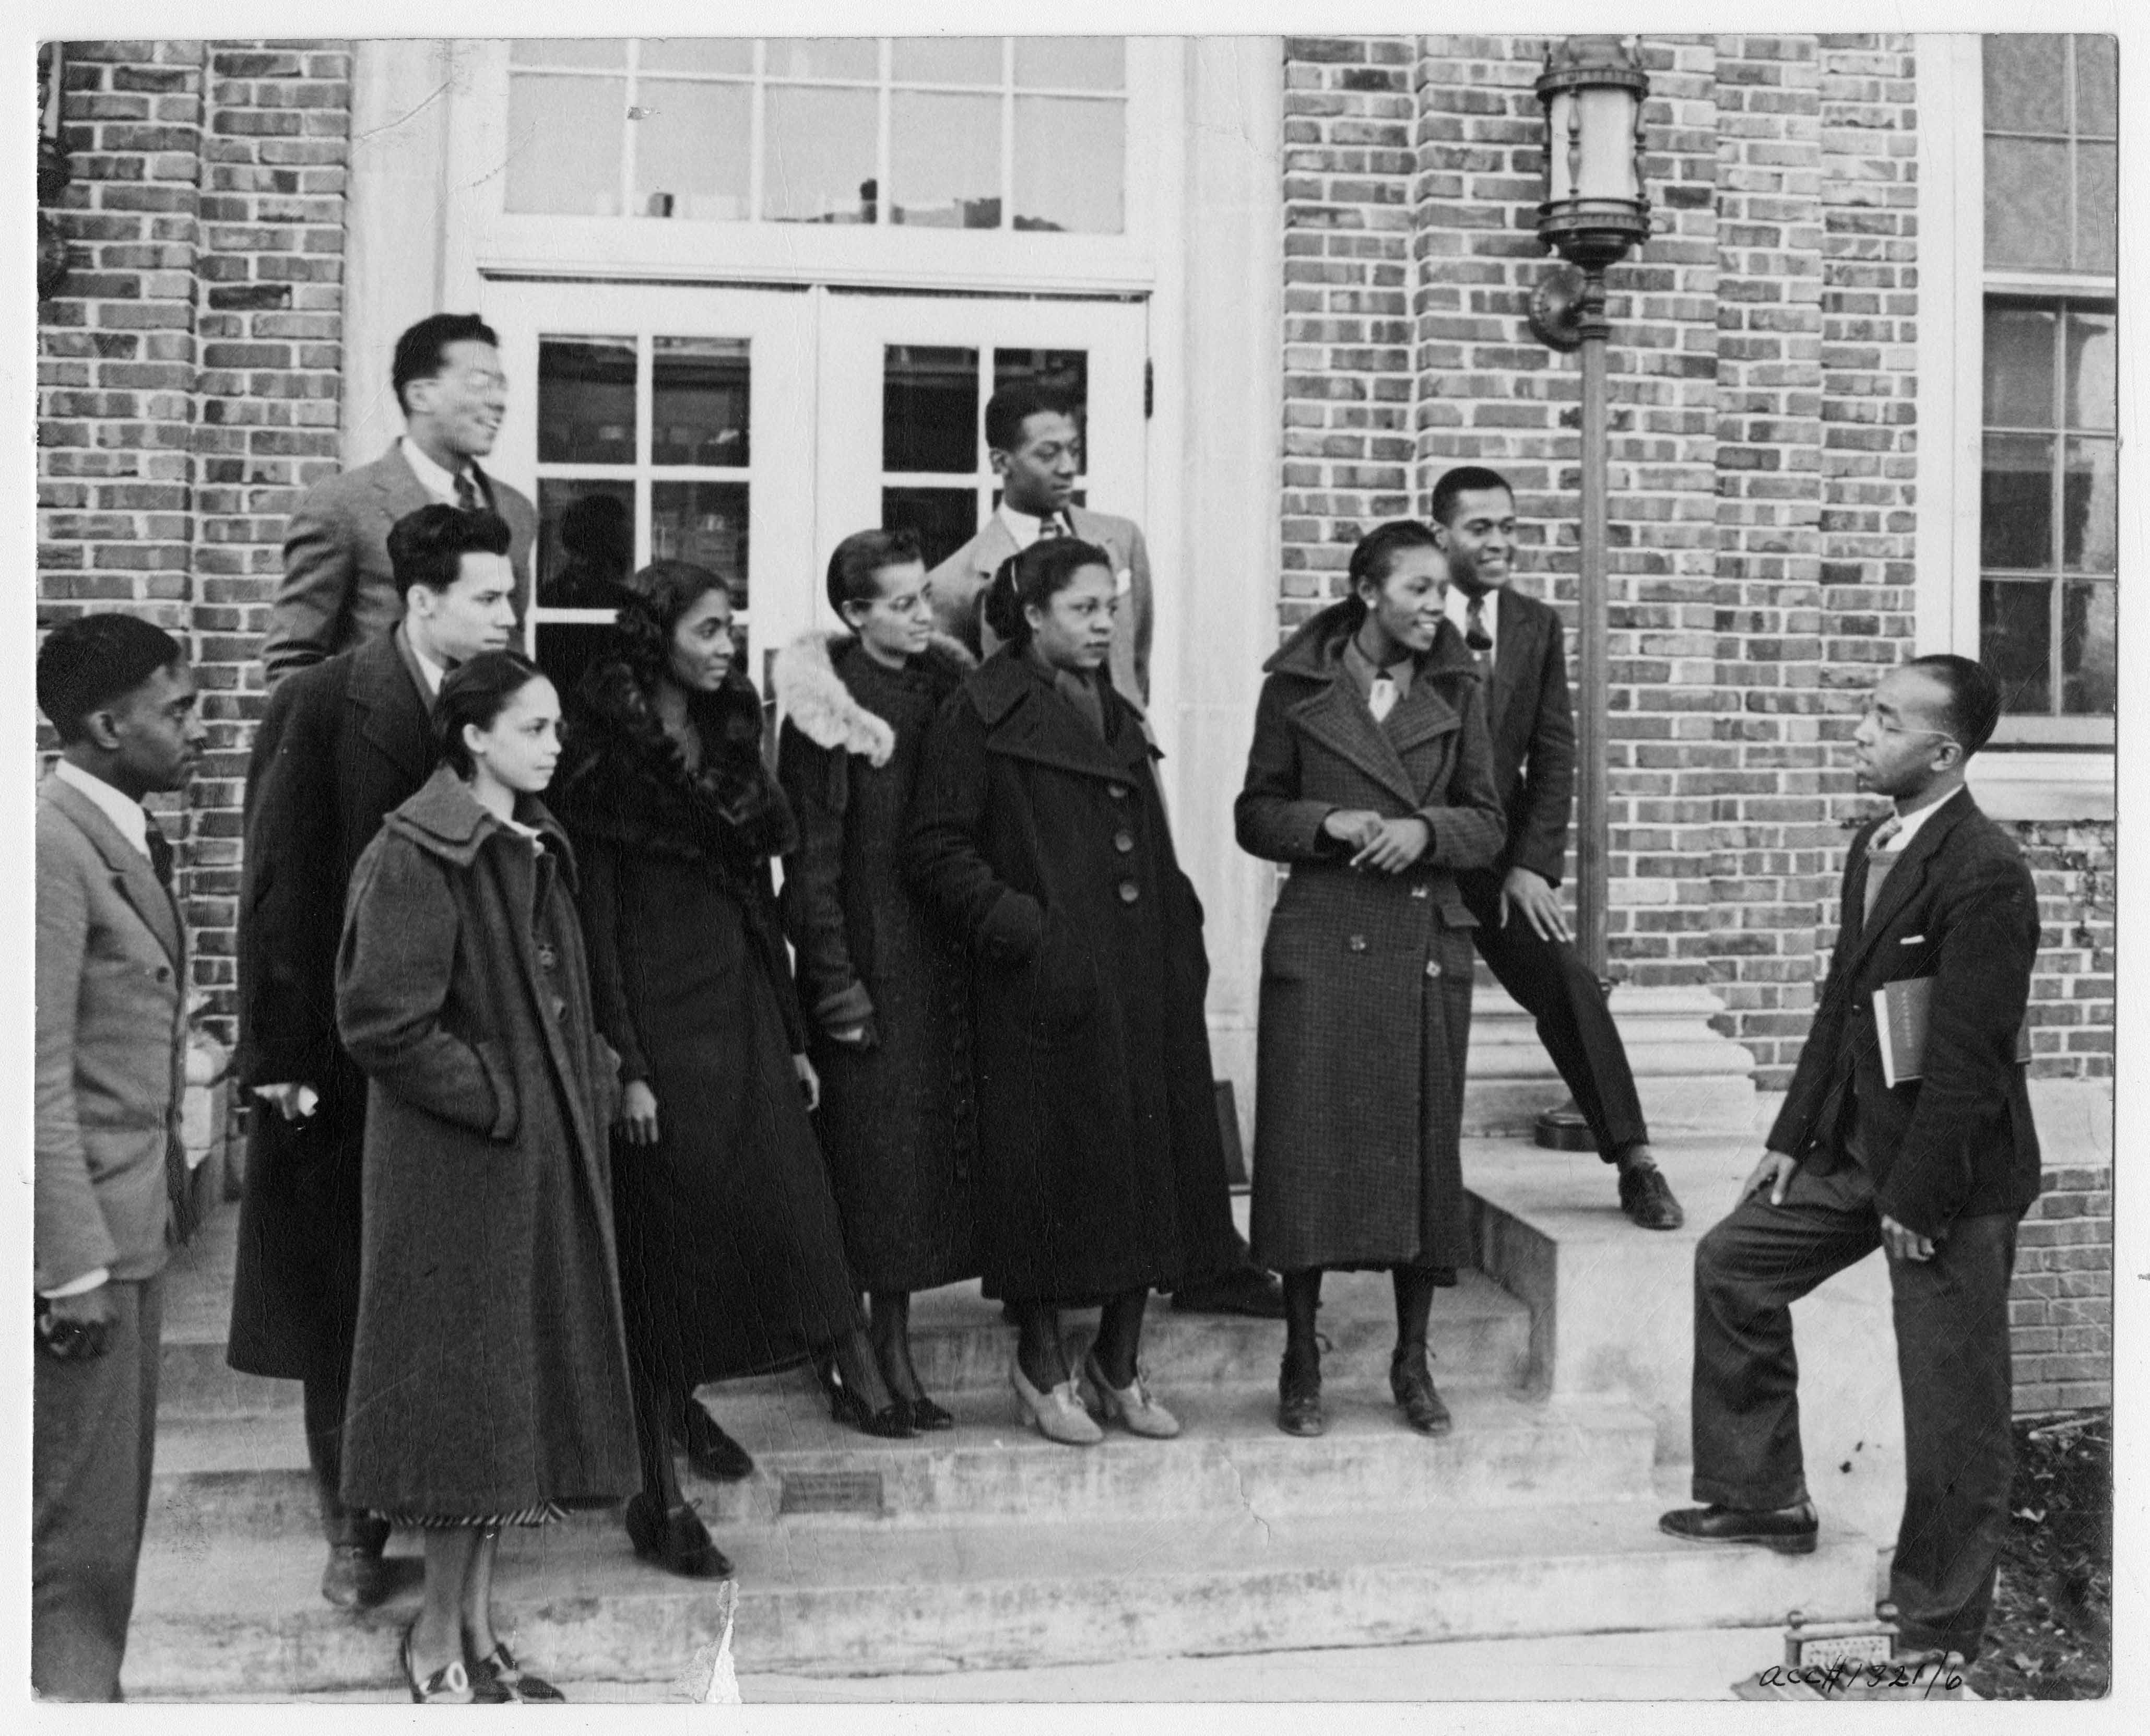 Students gathered outside a building at Lincoln University, c. 1937